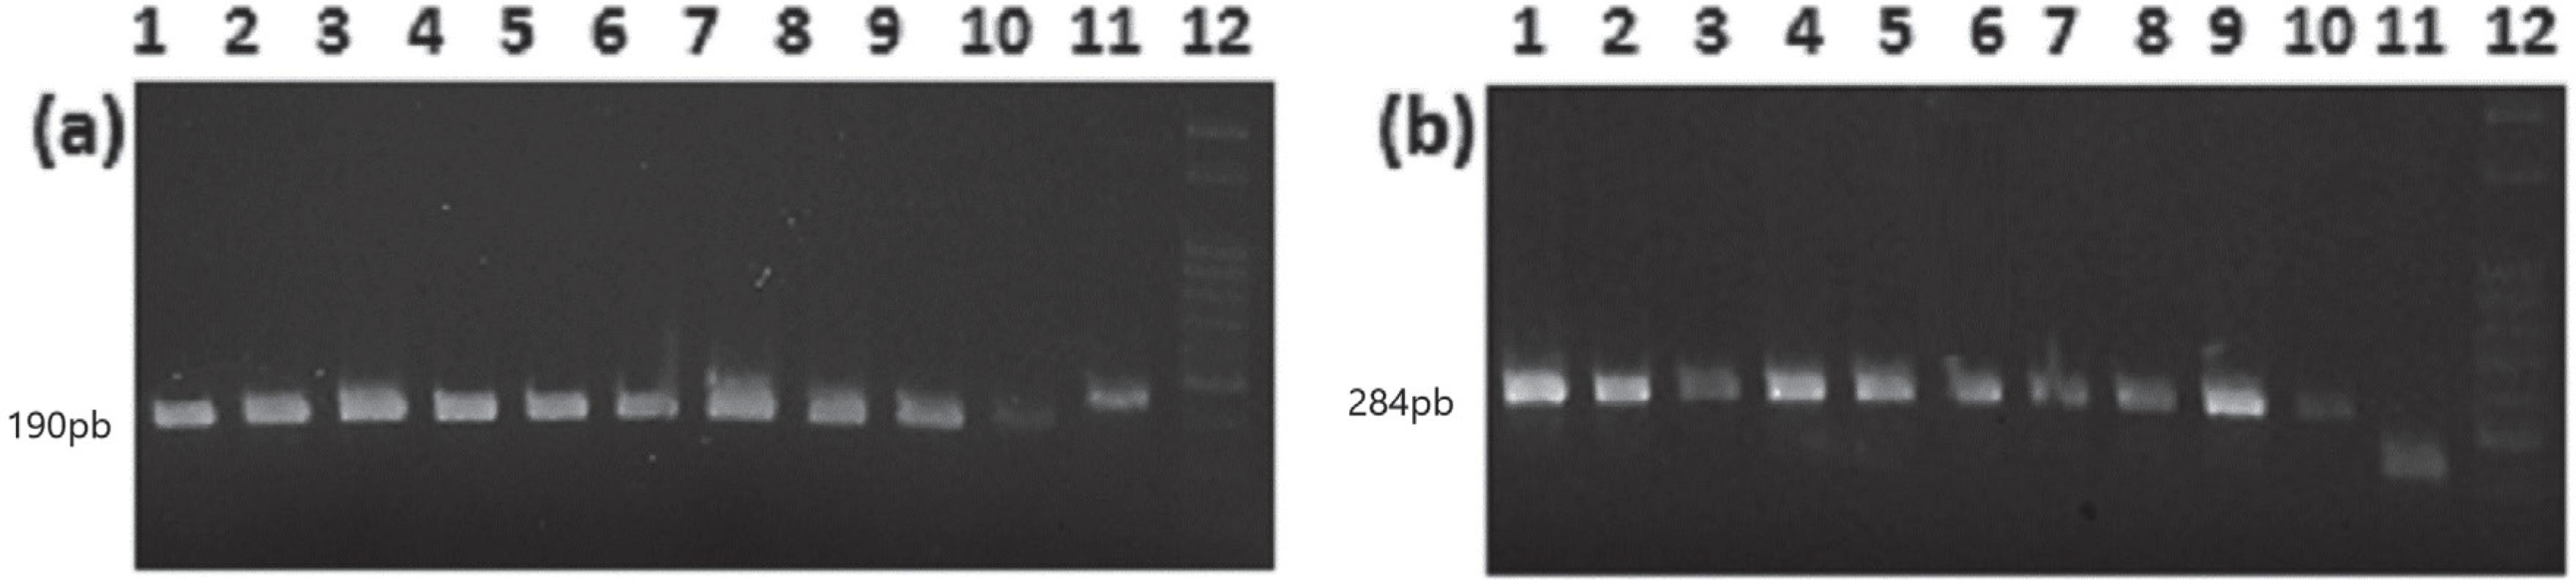 Agarose gel showing the limit of detection for JCV (190 pb): A) and BKV (284 pb); B) plasmids. Lines 1 to 10: Plasmids ranging from 1010 to 101 copies; line 11: the human beta-actin used as an endogenous control (220 pb); line 12: 100 bp DNA ladder (New England Biolabs, USA)